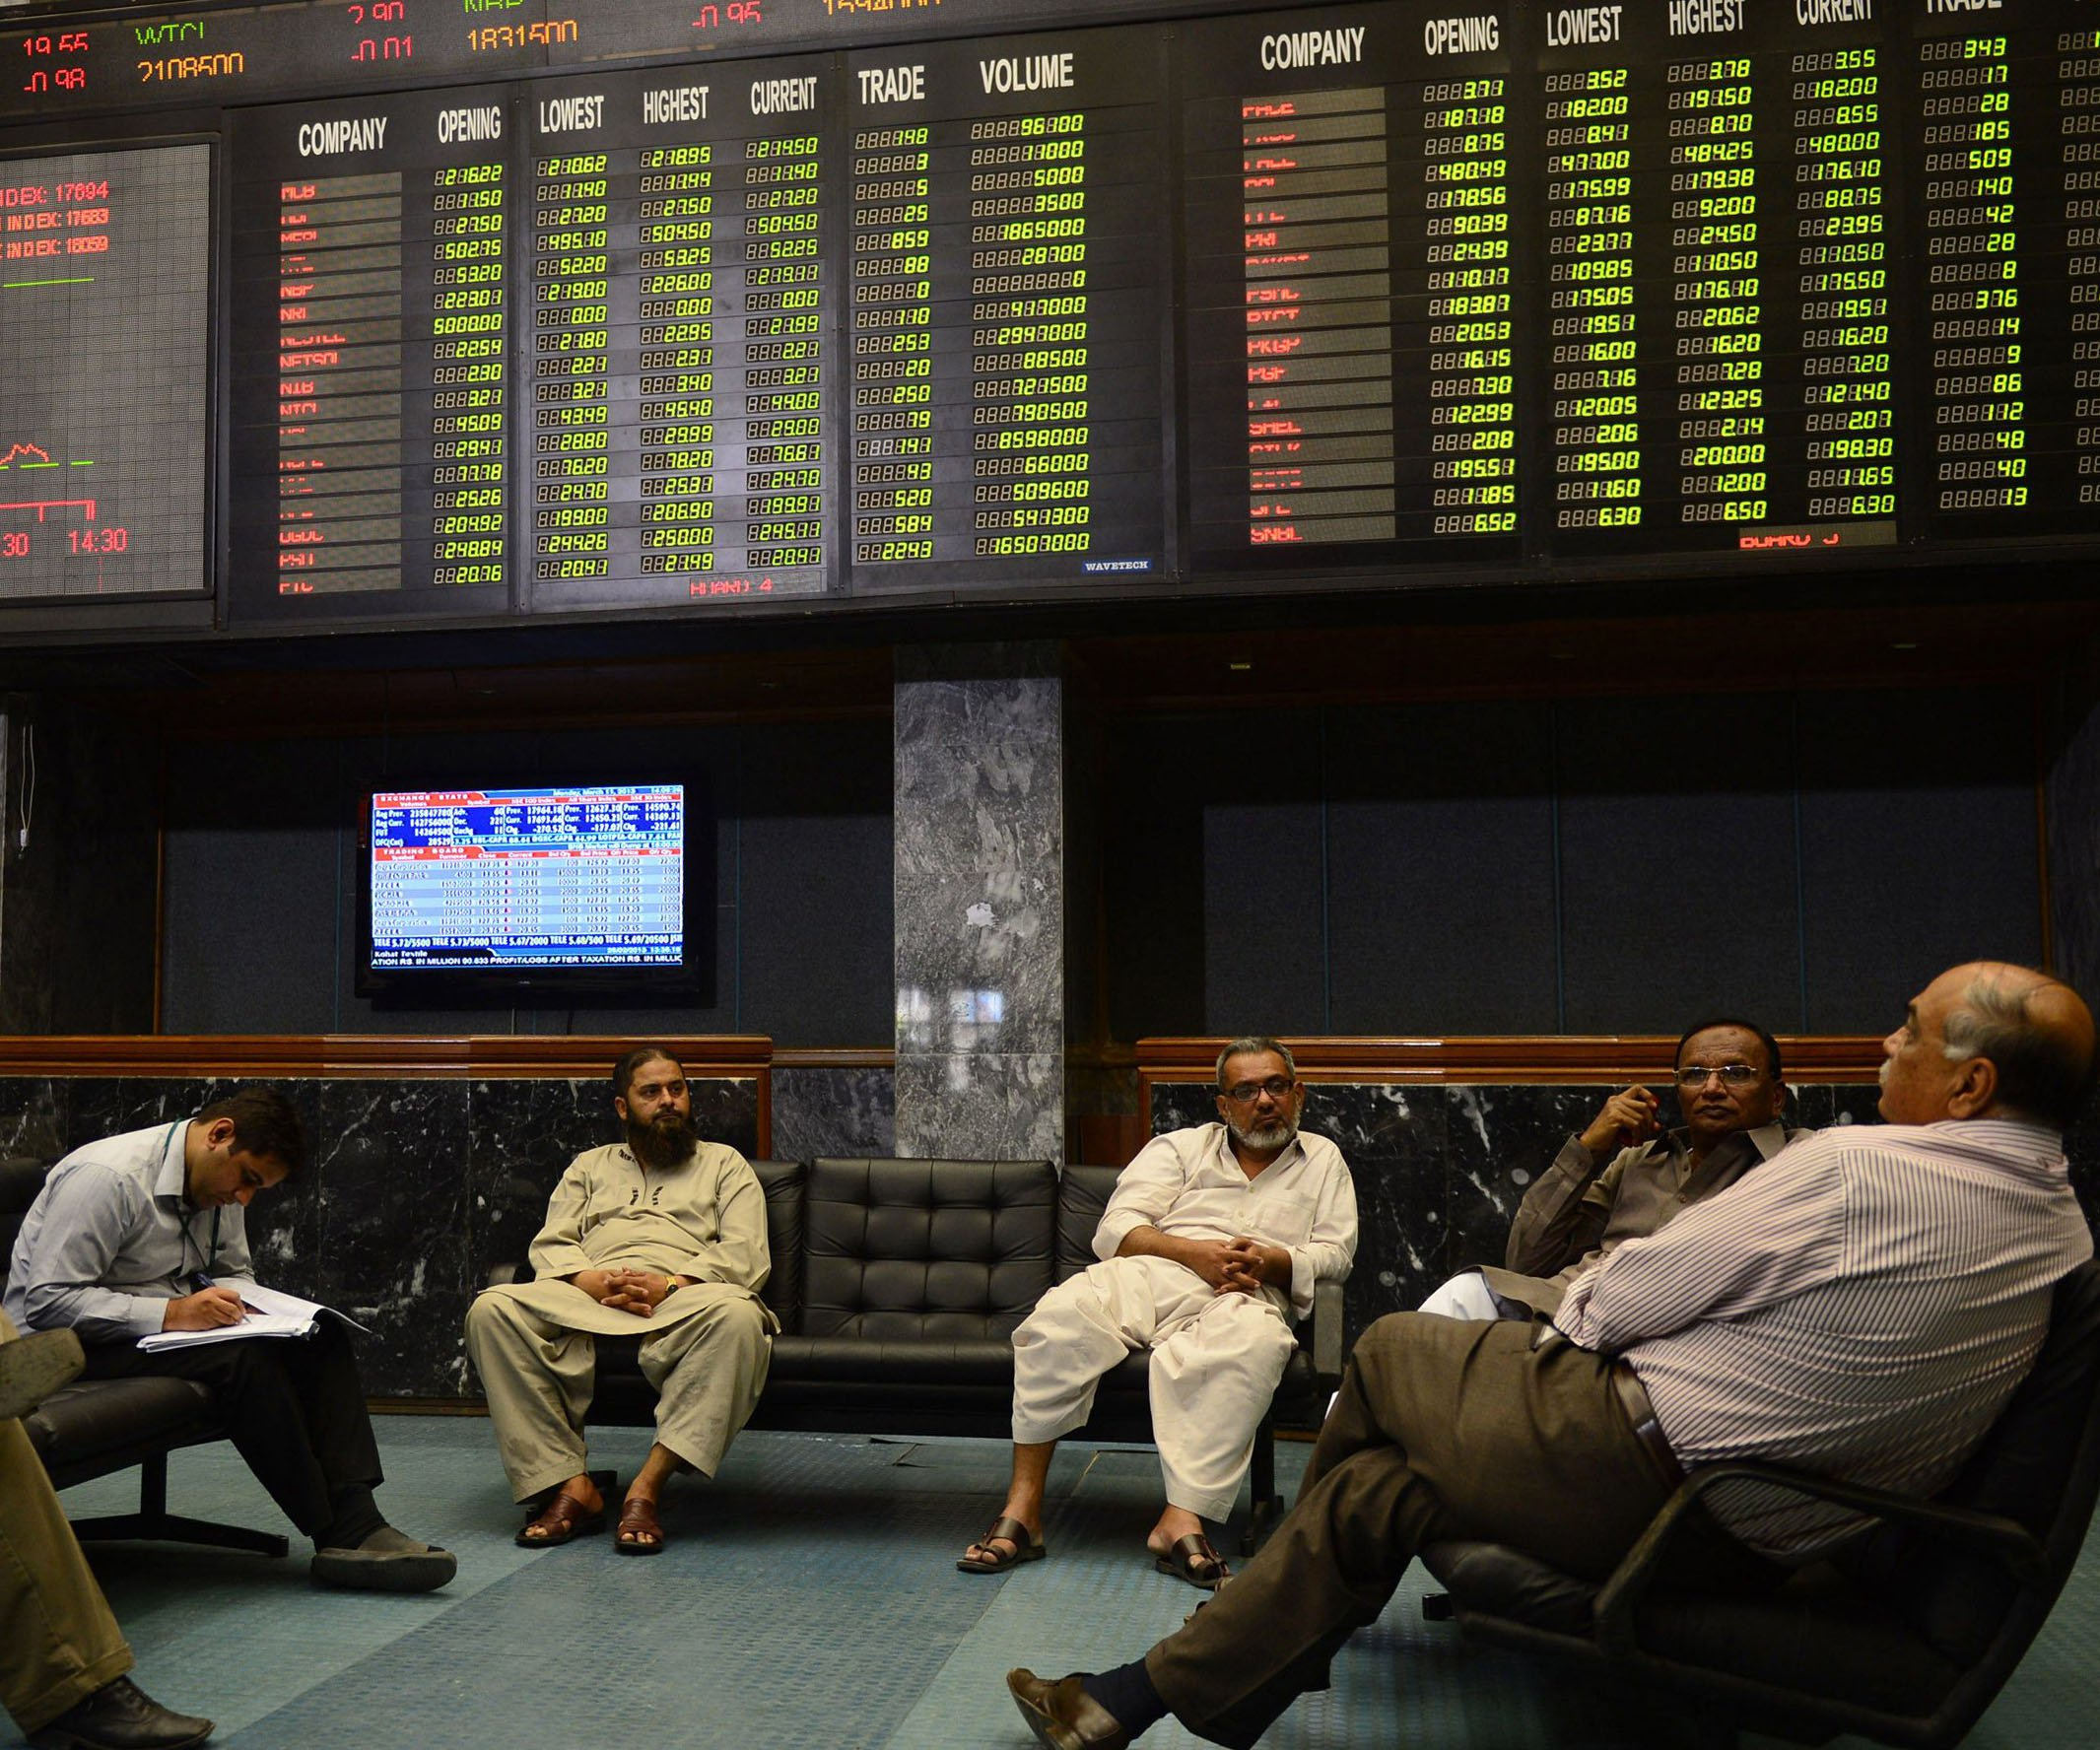 stock-market-kse-100-index-photo-afp-2-2-2-3-2-4-2-2-3-4-2-3-2-2-2-2-2-3-2-3-3-2-2-3-4-2-2-2